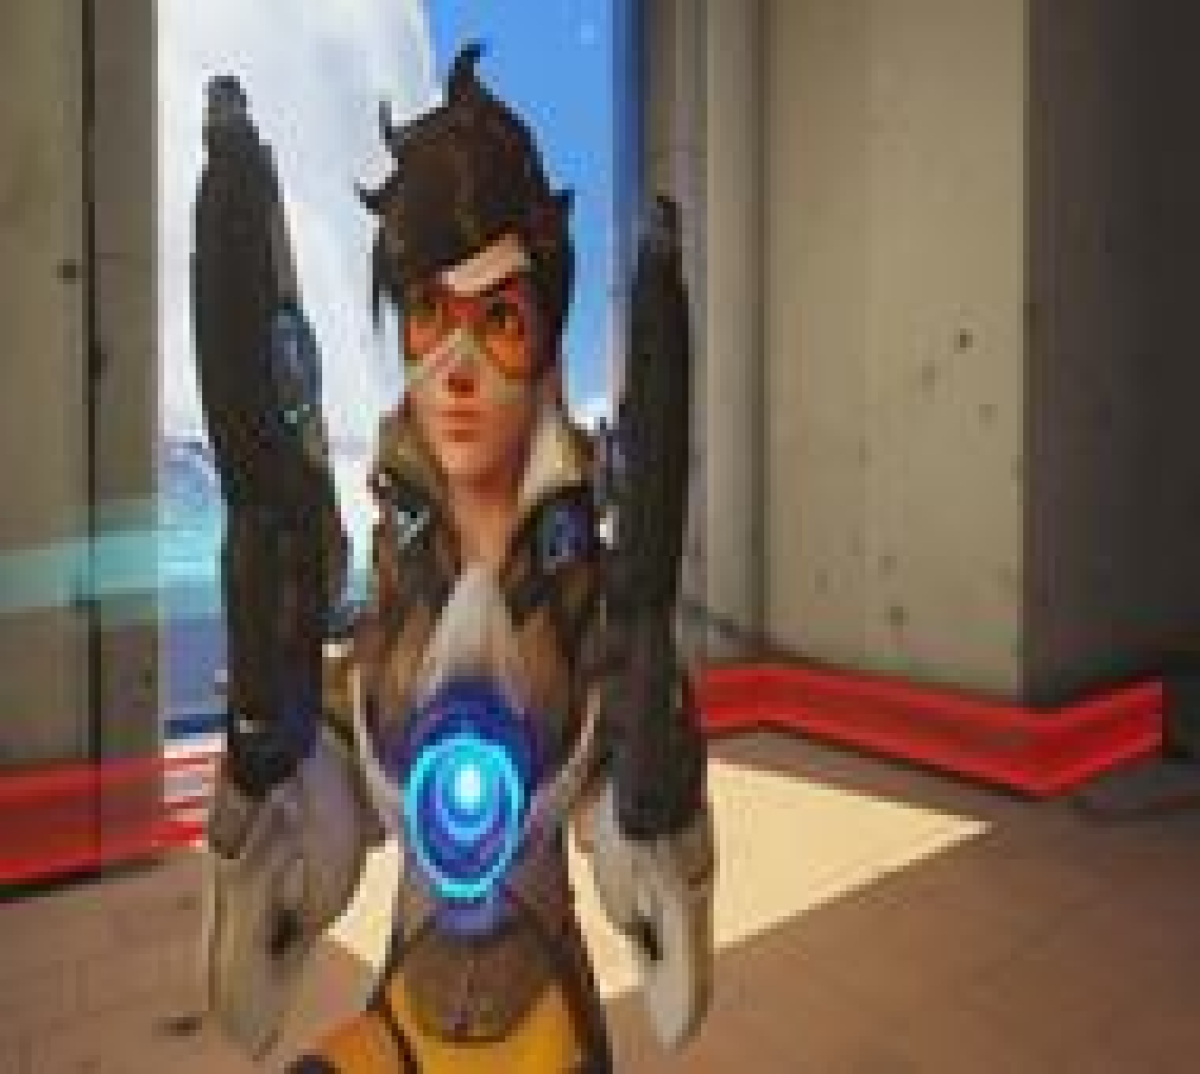 Facebook, Blizzard to integrate live video in online games